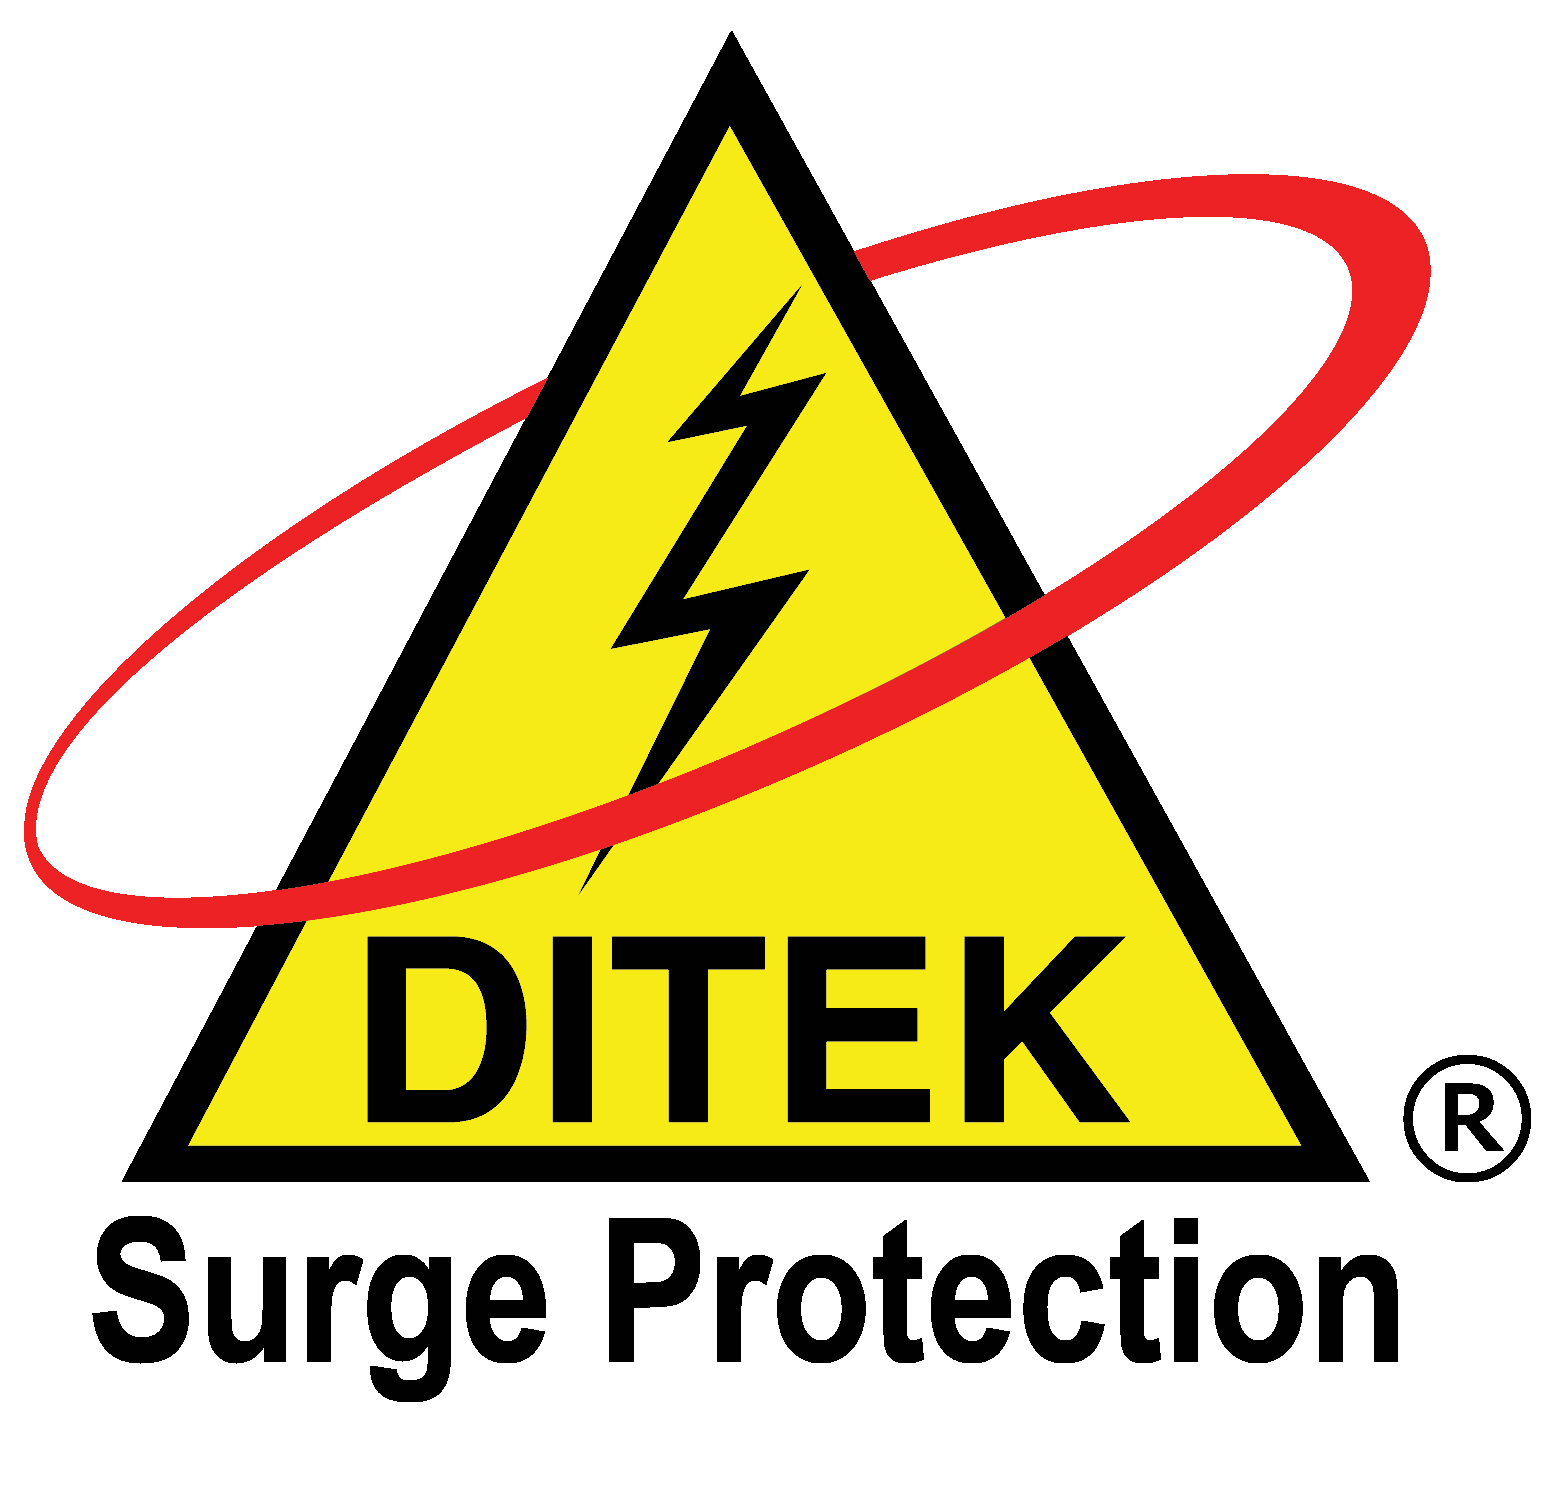 DITEK Surge Protection Color